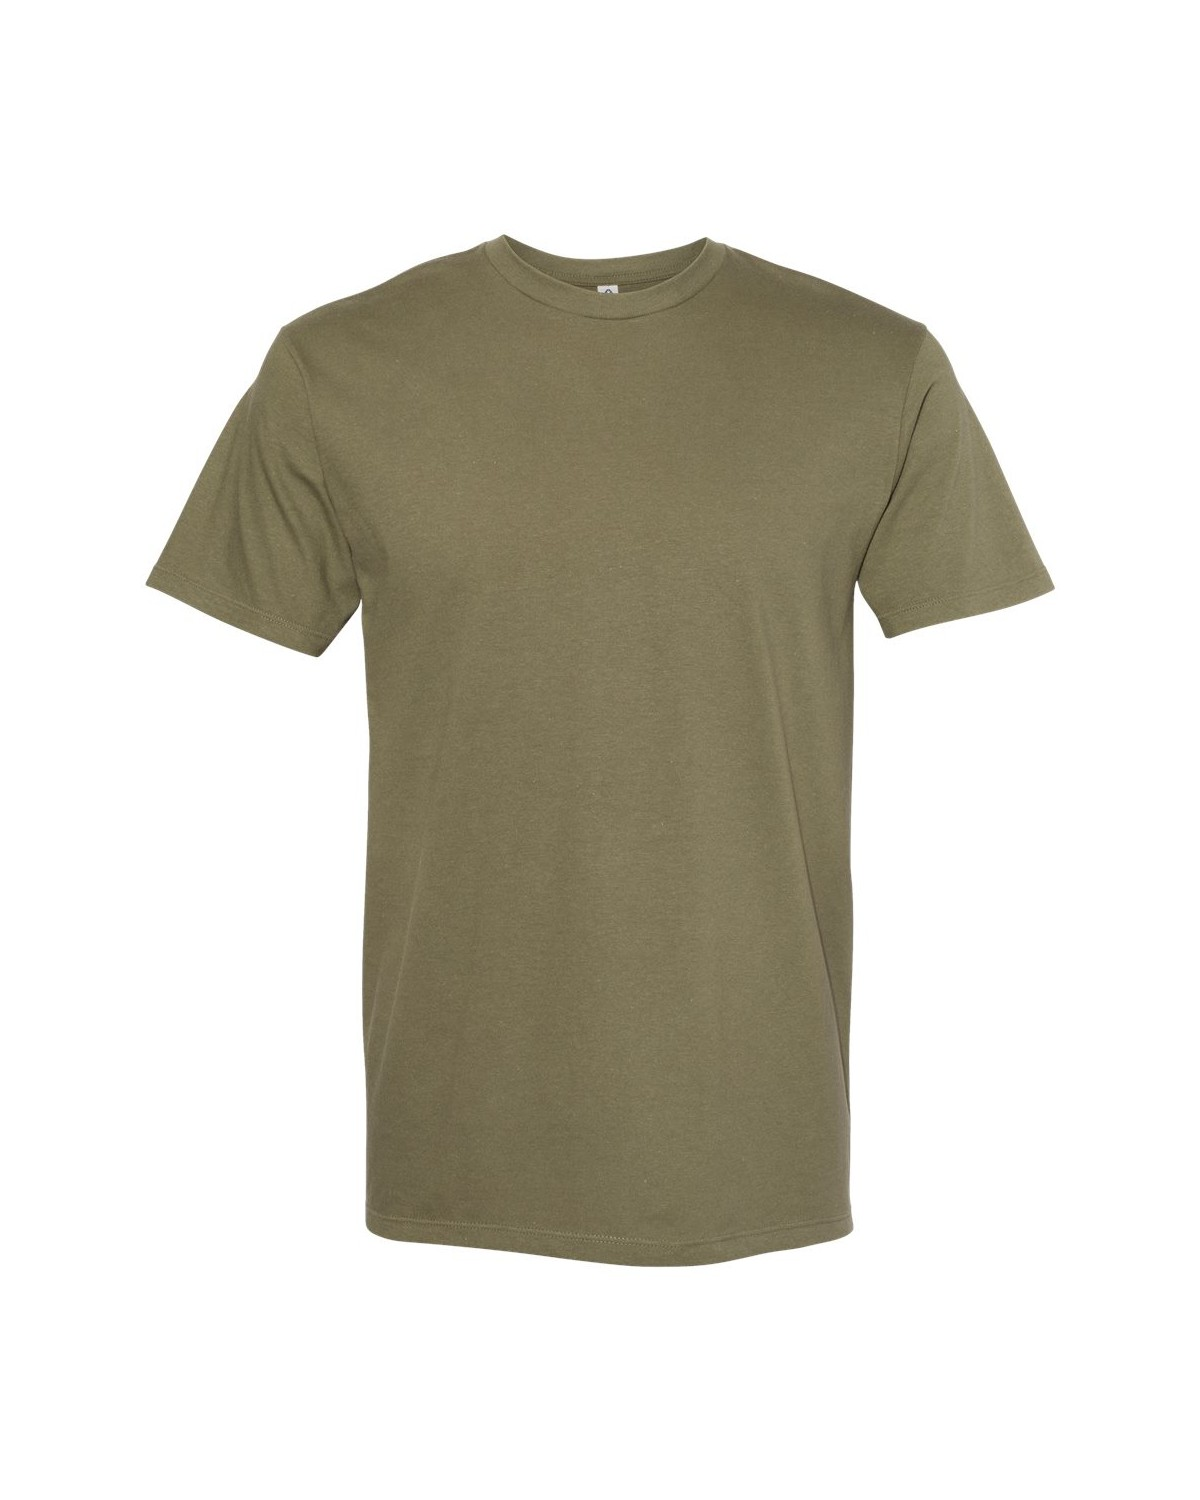 5301N Alstyle MILITARY GREEN